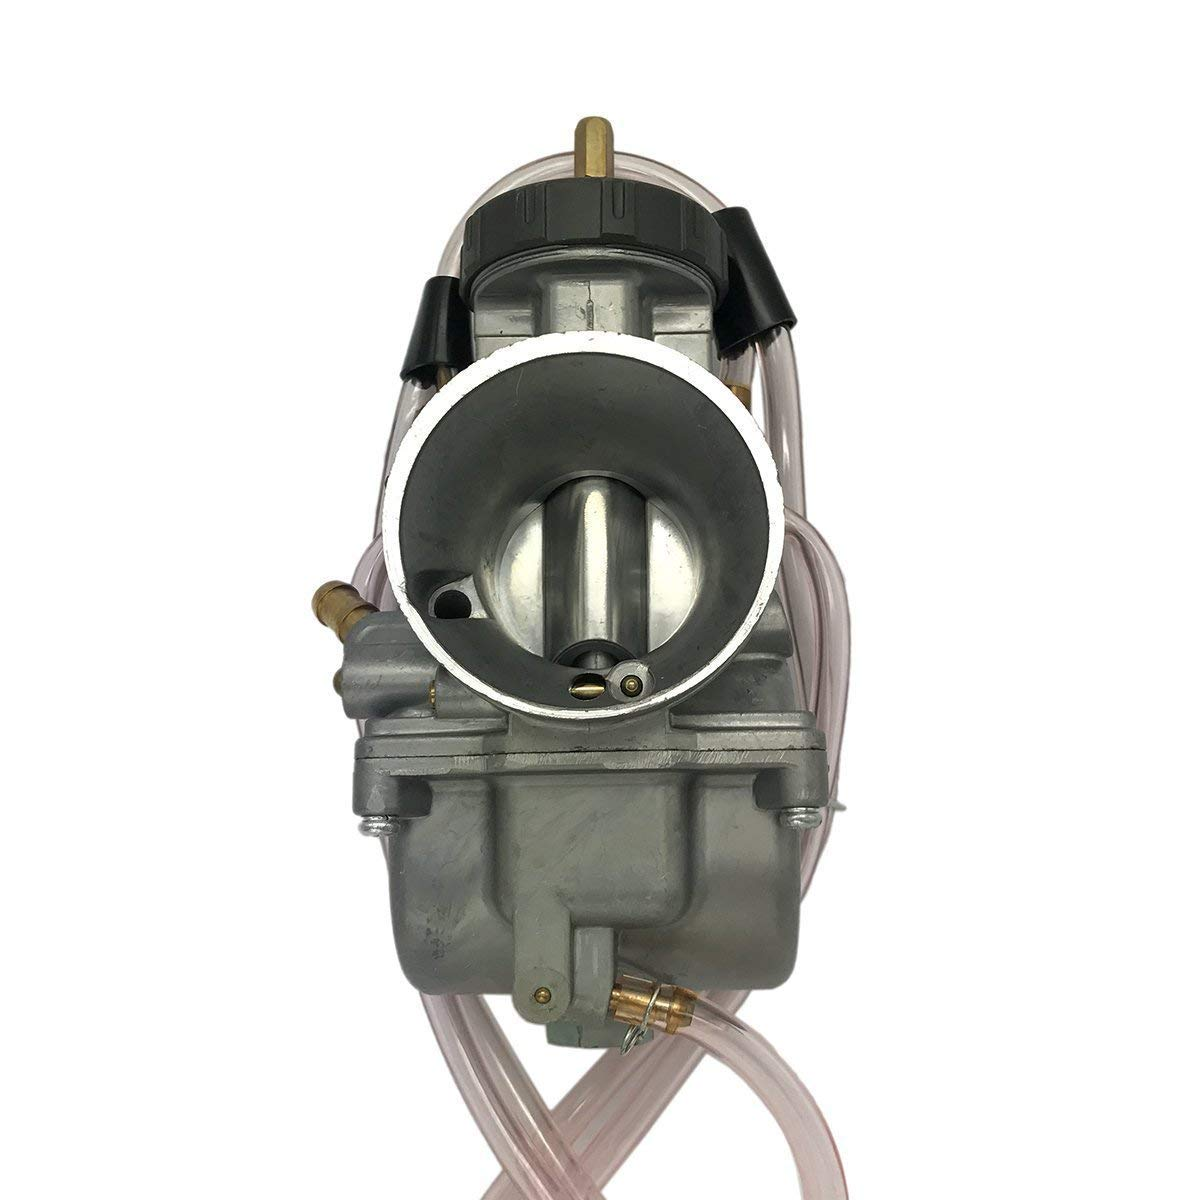 Annpee PWK35 Air Strike 35mm PWK Carburetor for Kawasaki KDX200 Banshee YFZ350 with 35mm bore Size carb KEIHIN 016.150